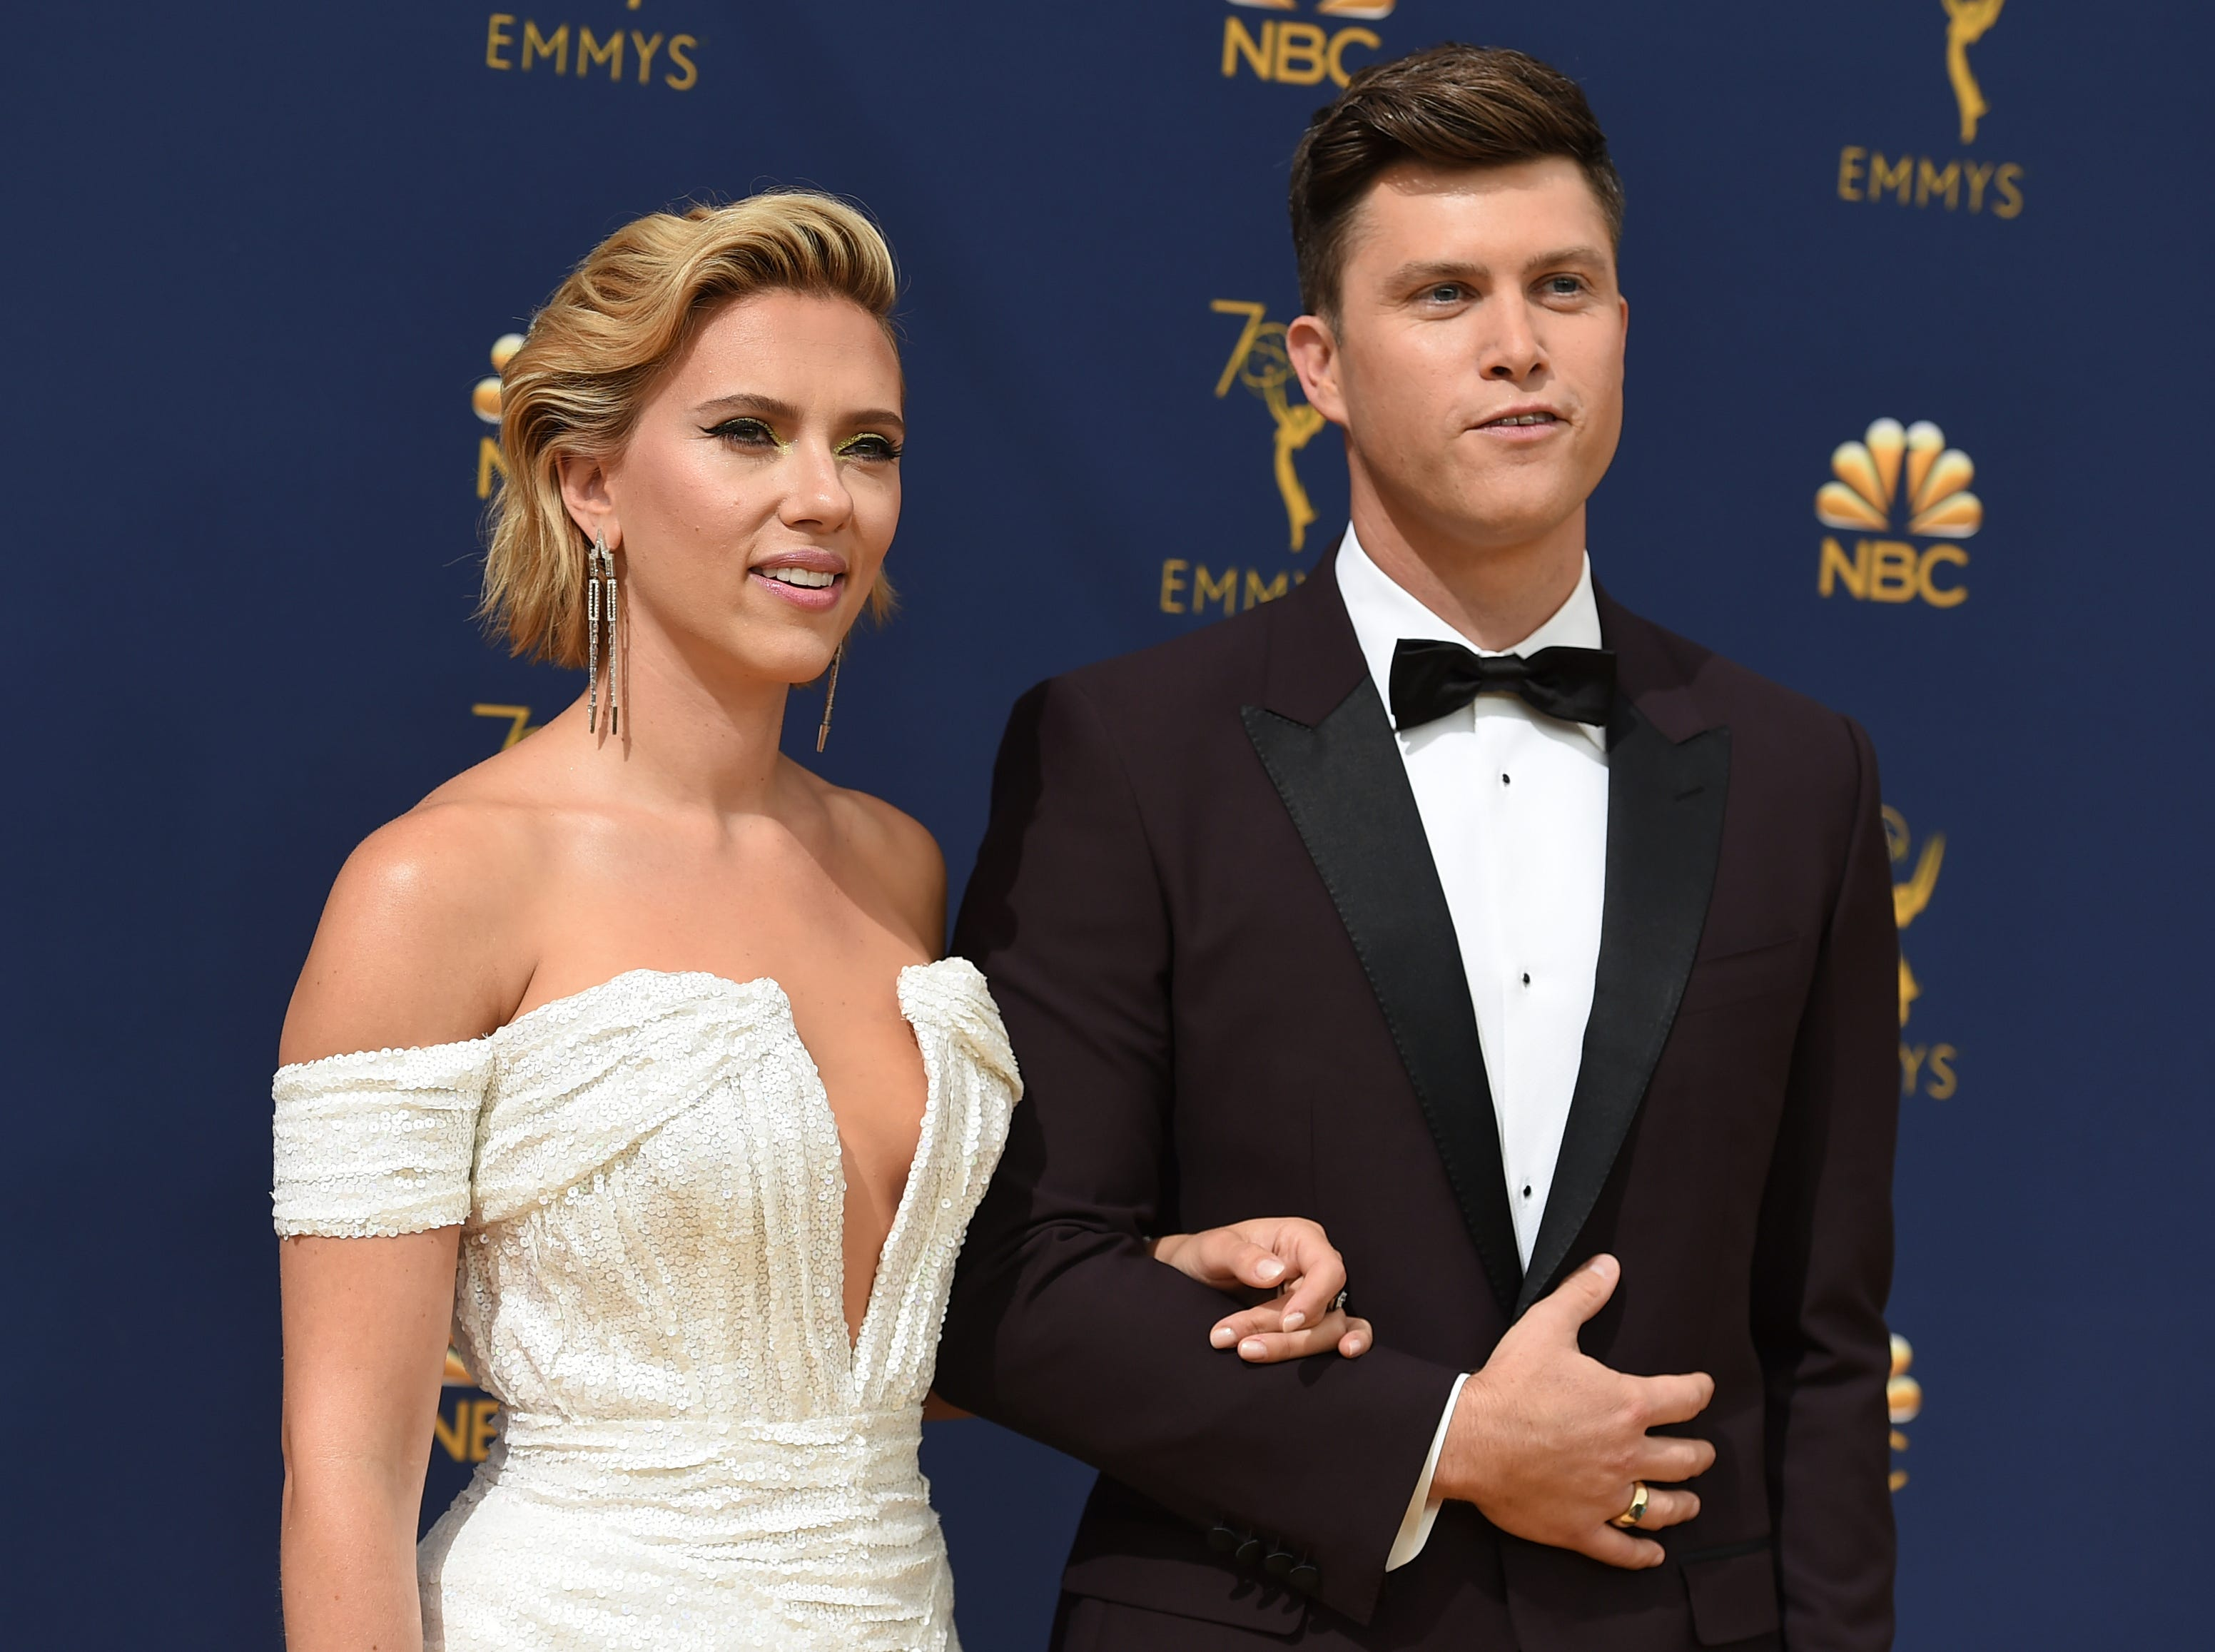 Scarlett Johansson, left, and Colin Jost arrive at the 70th Primetime Emmy Awards on Monday, Sept. 17, 2018, at the Microsoft Theater in Los Angeles.